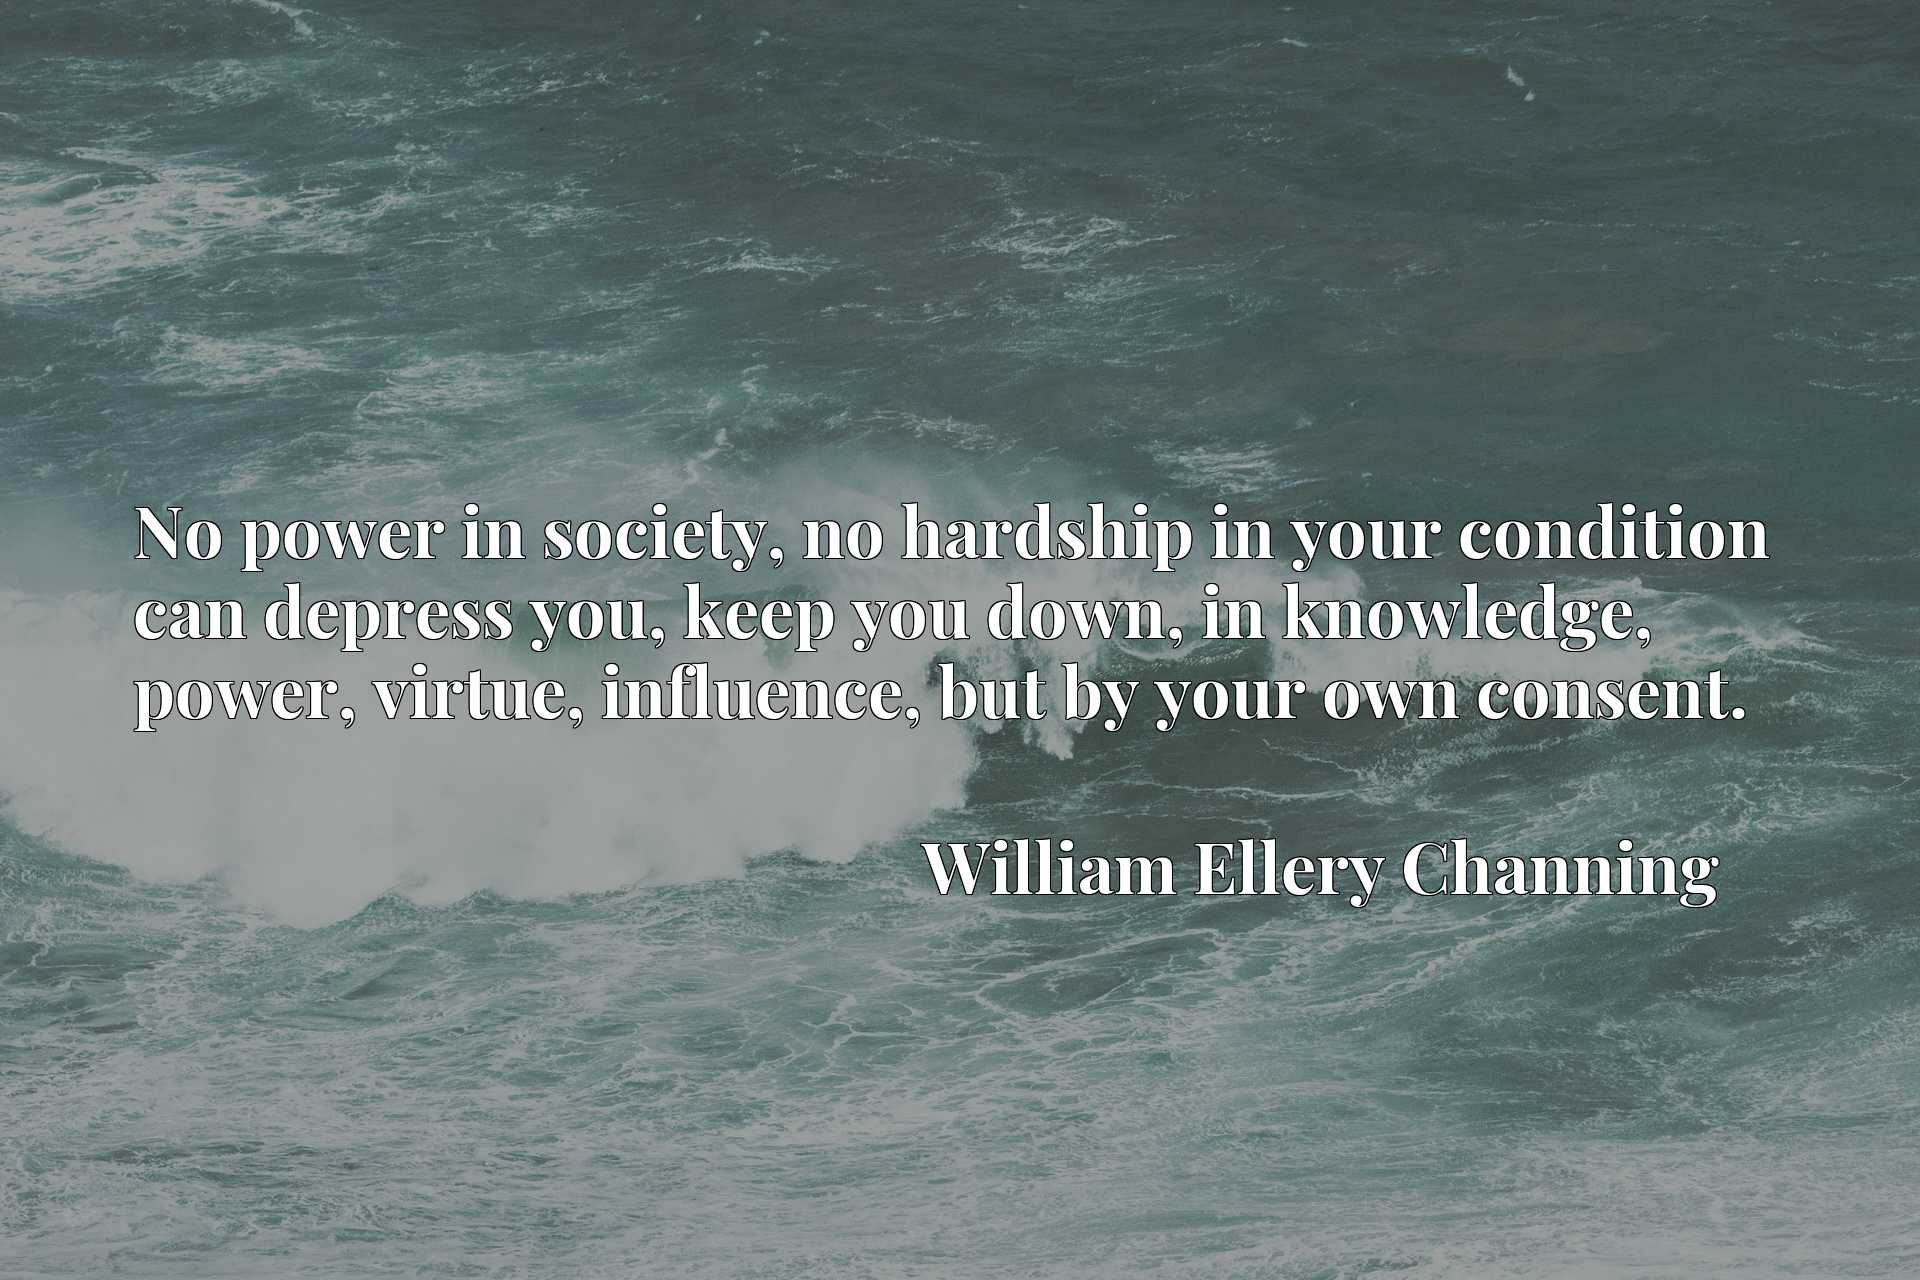 No power in society, no hardship in your condition can depress you, keep you down, in knowledge, power, virtue, influence, but by your own consent.